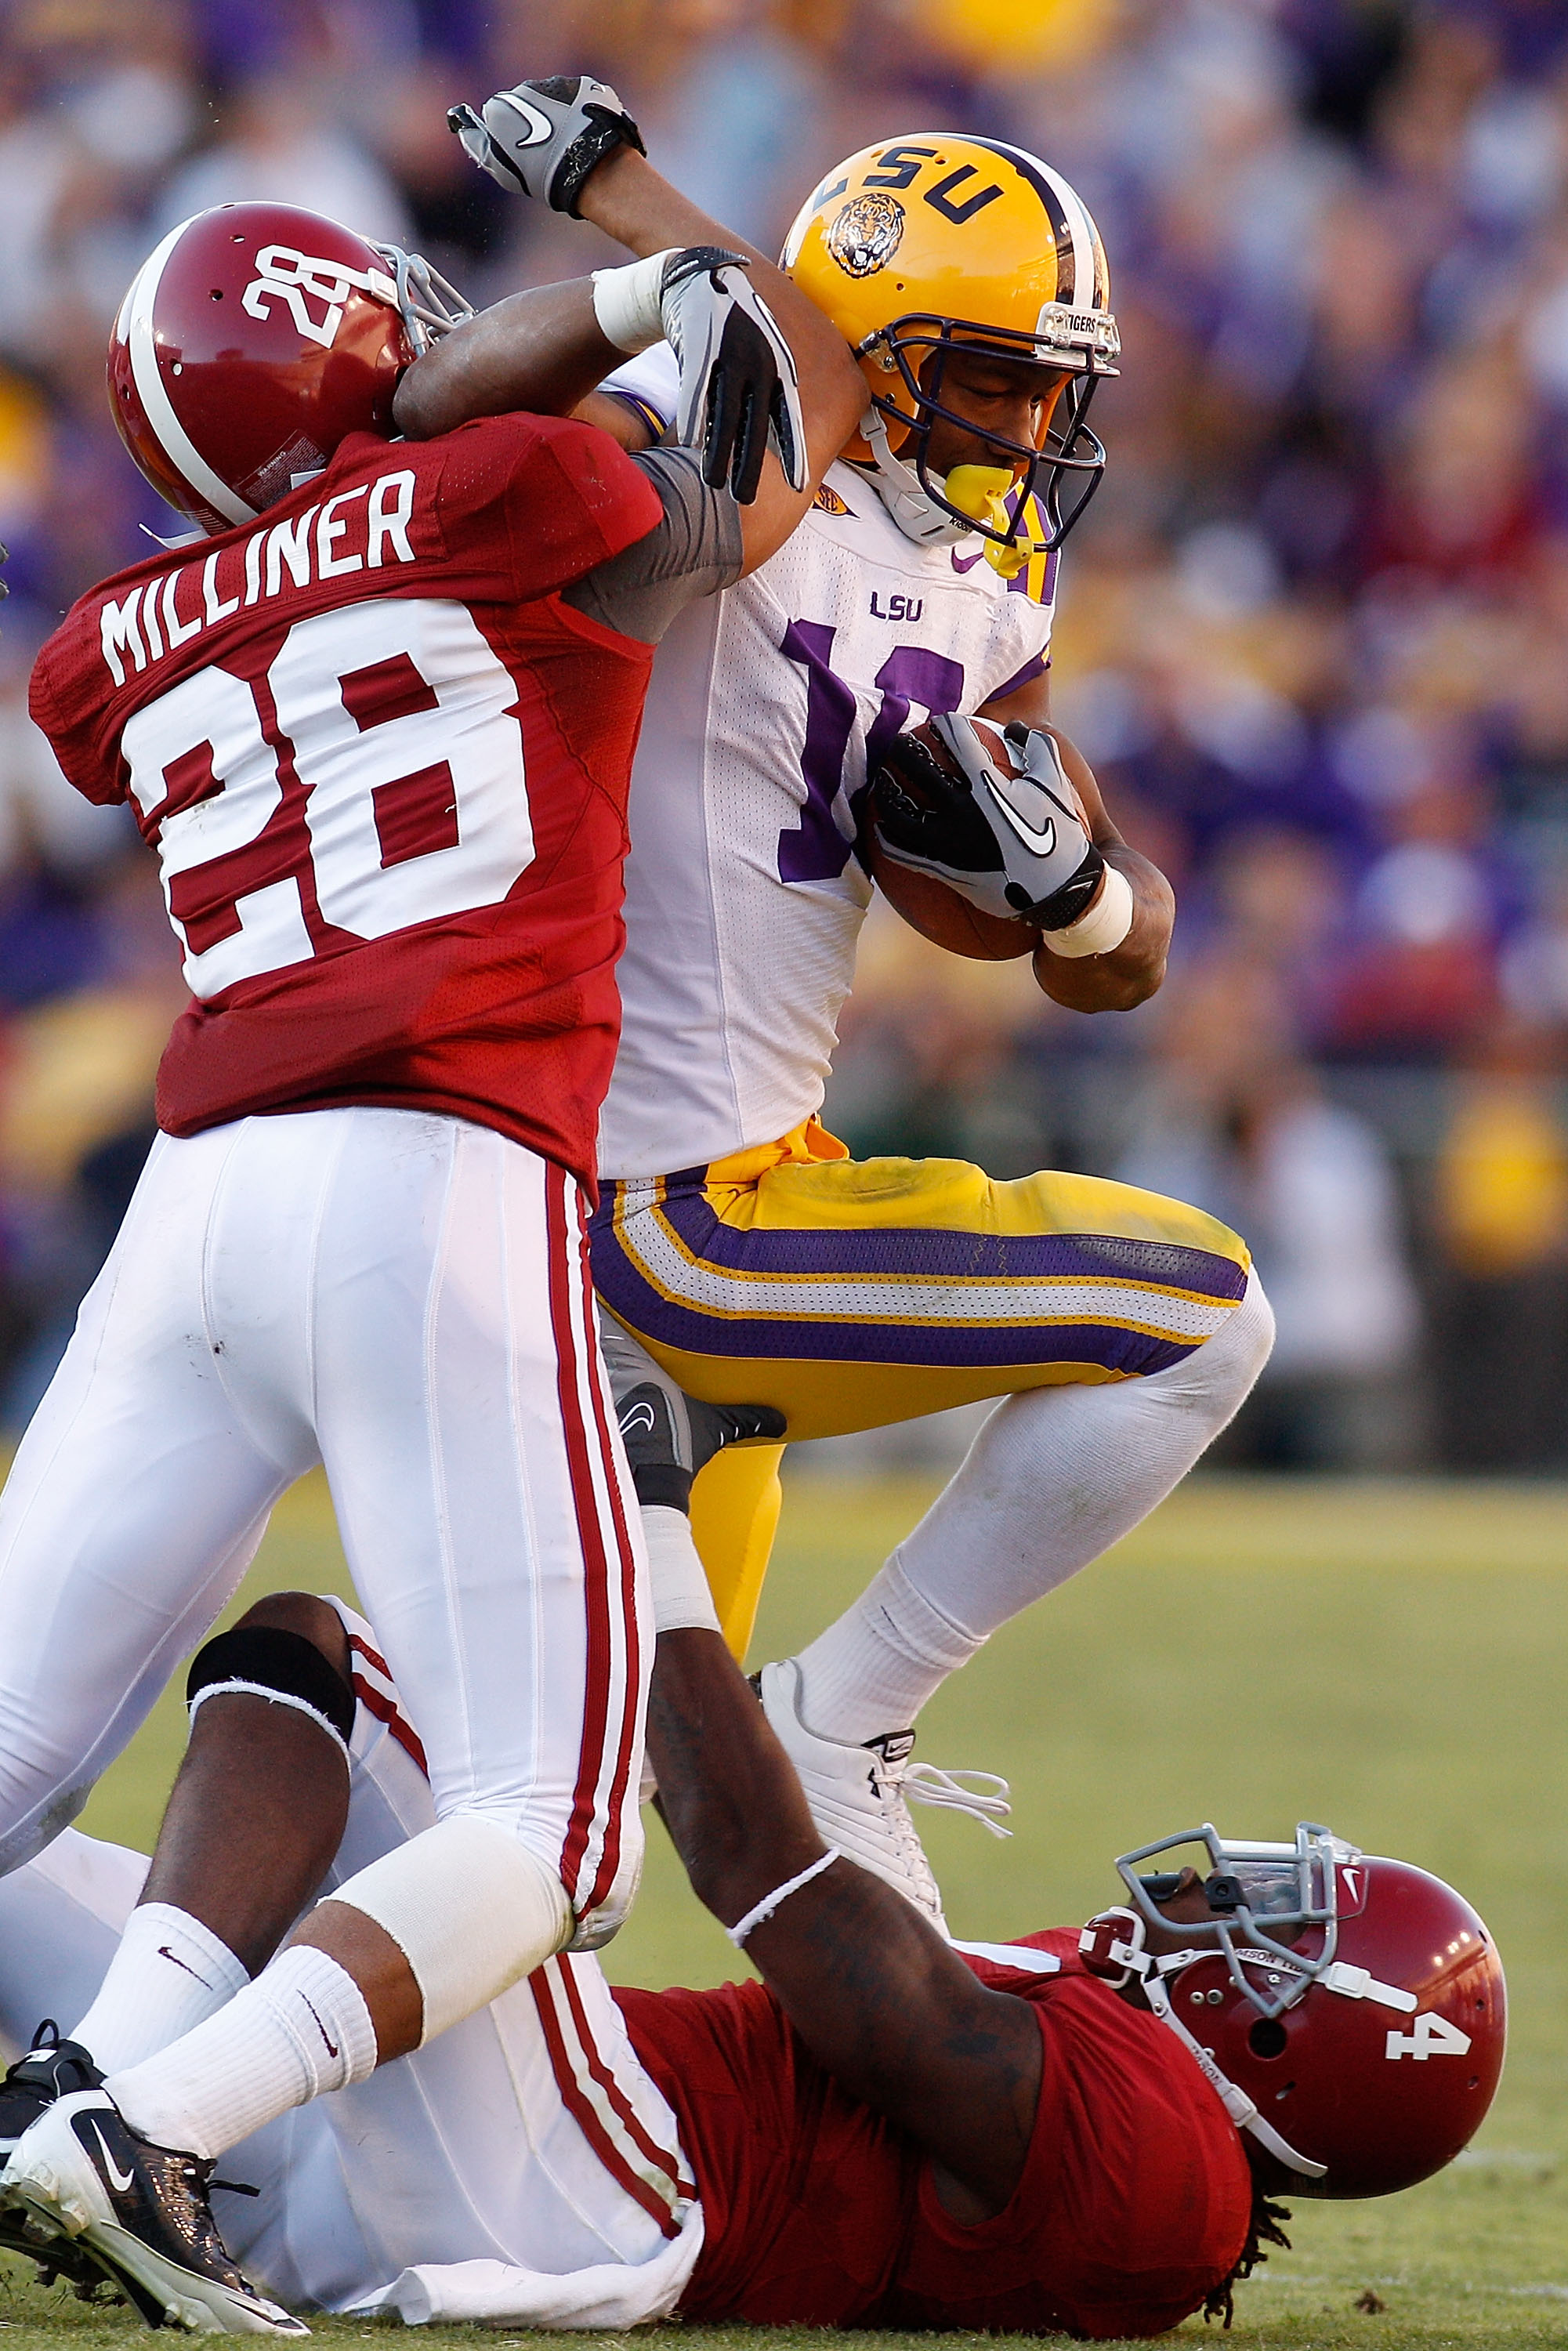 The Tide have been stomped by the injury bug lately.